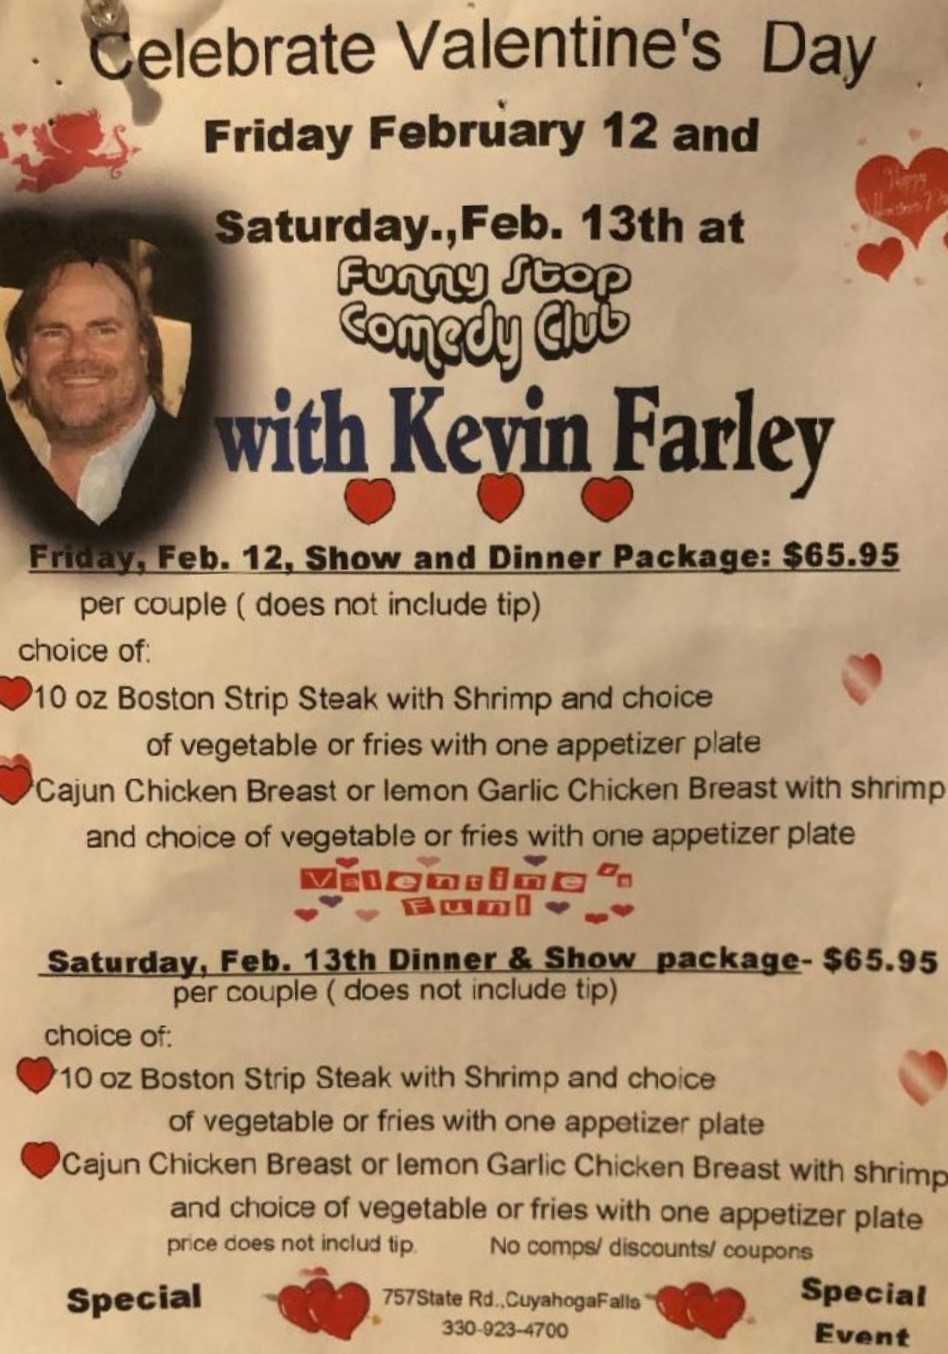 Kevin Farley 6:30 Show Funny Stop Comedy Club on Feb 12, 18:30@Funny Stop Comedy Club - Buy tickets and Get information on Funny Stop funnystop.online